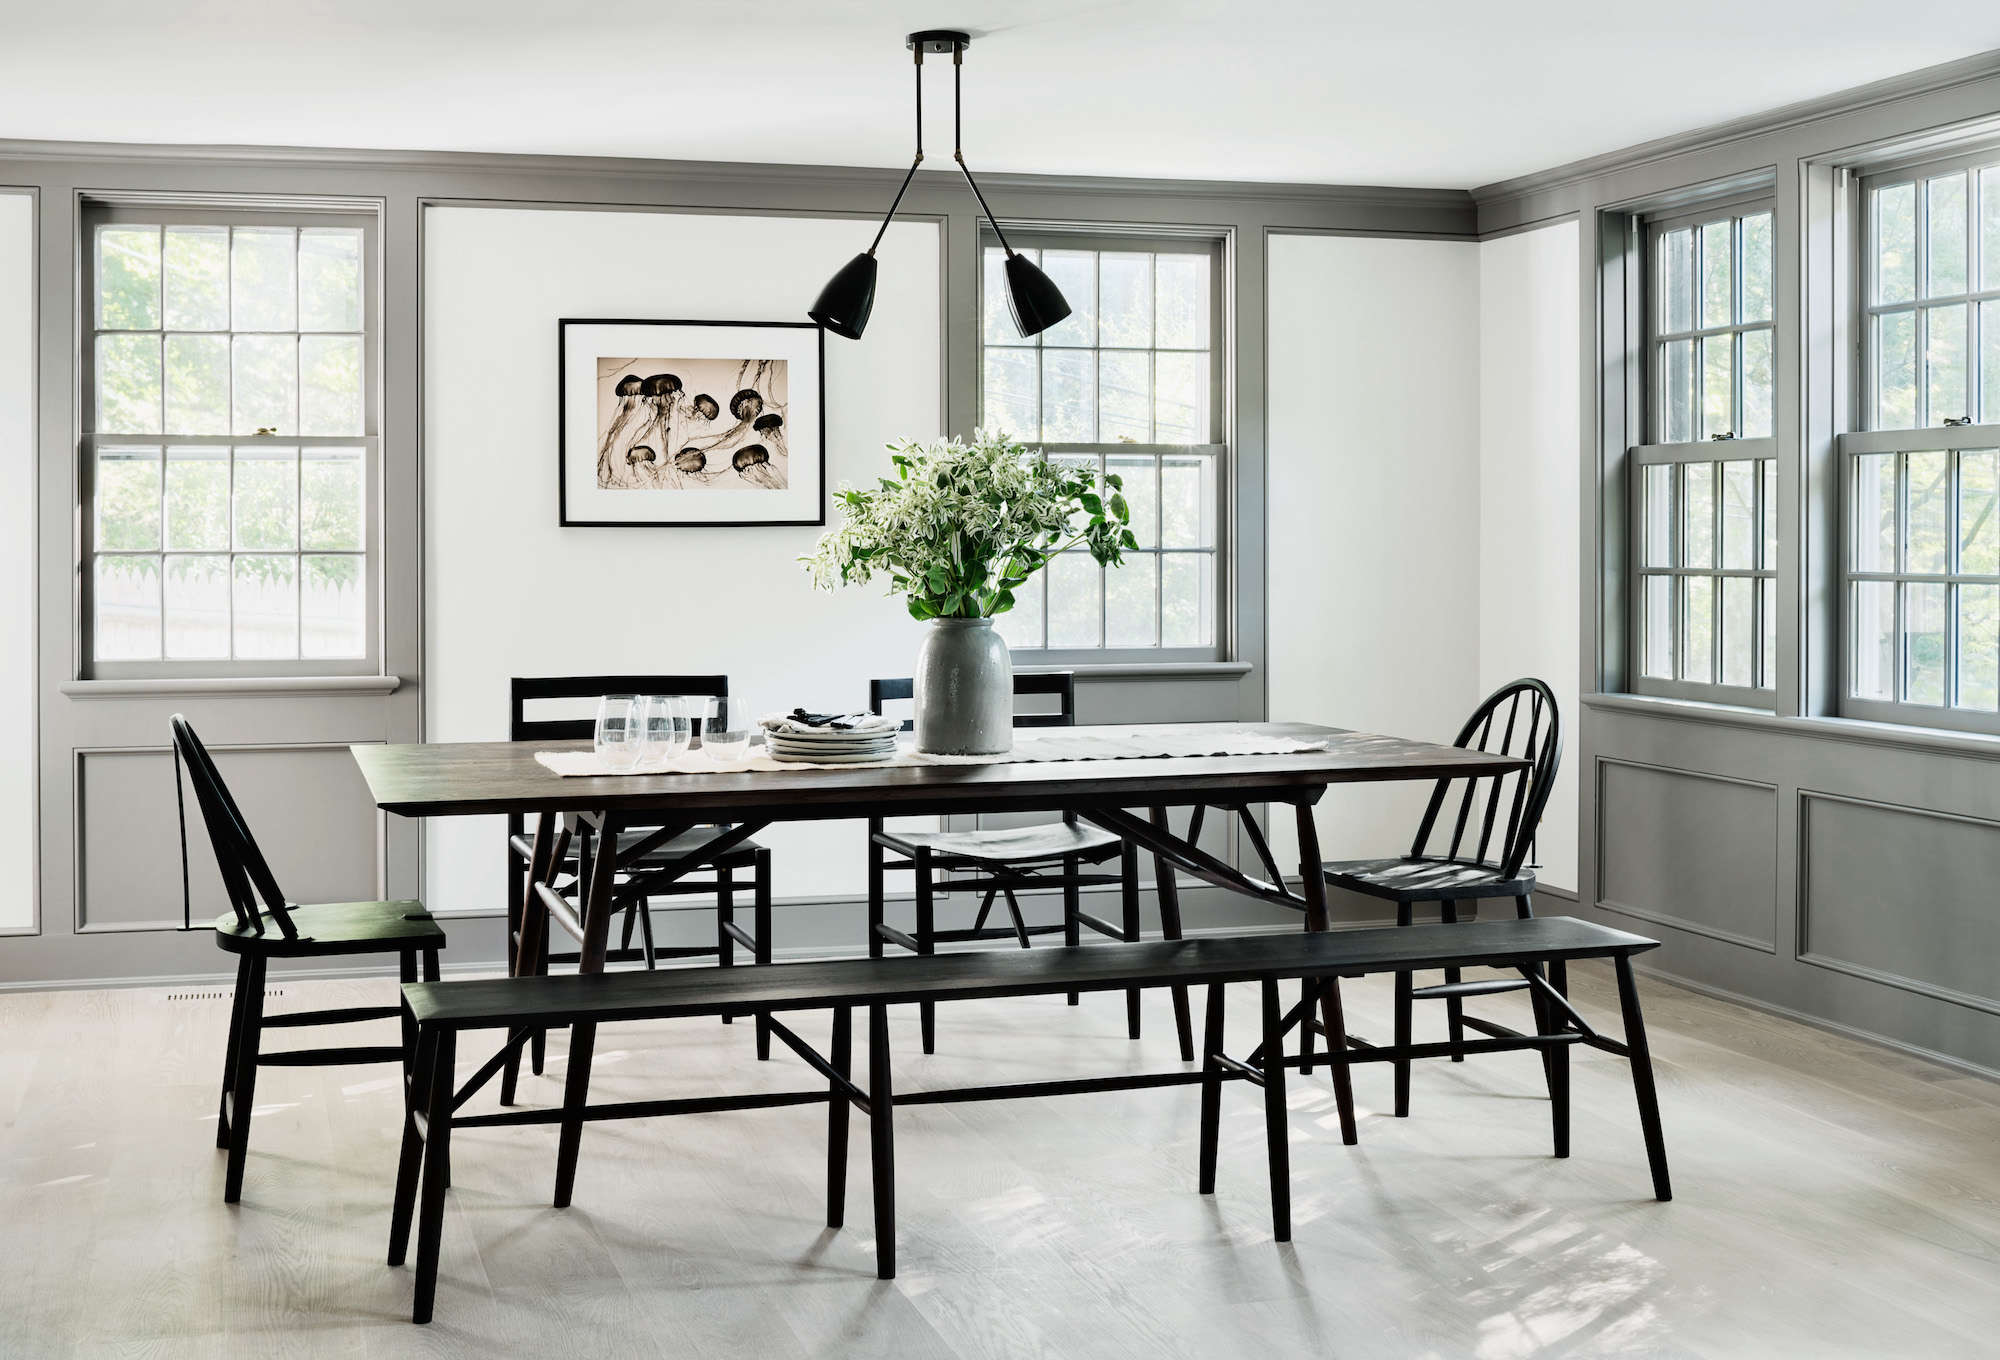 Delightful Modern Farmhouse Renovation Dining Room Black Sawkille Furniture